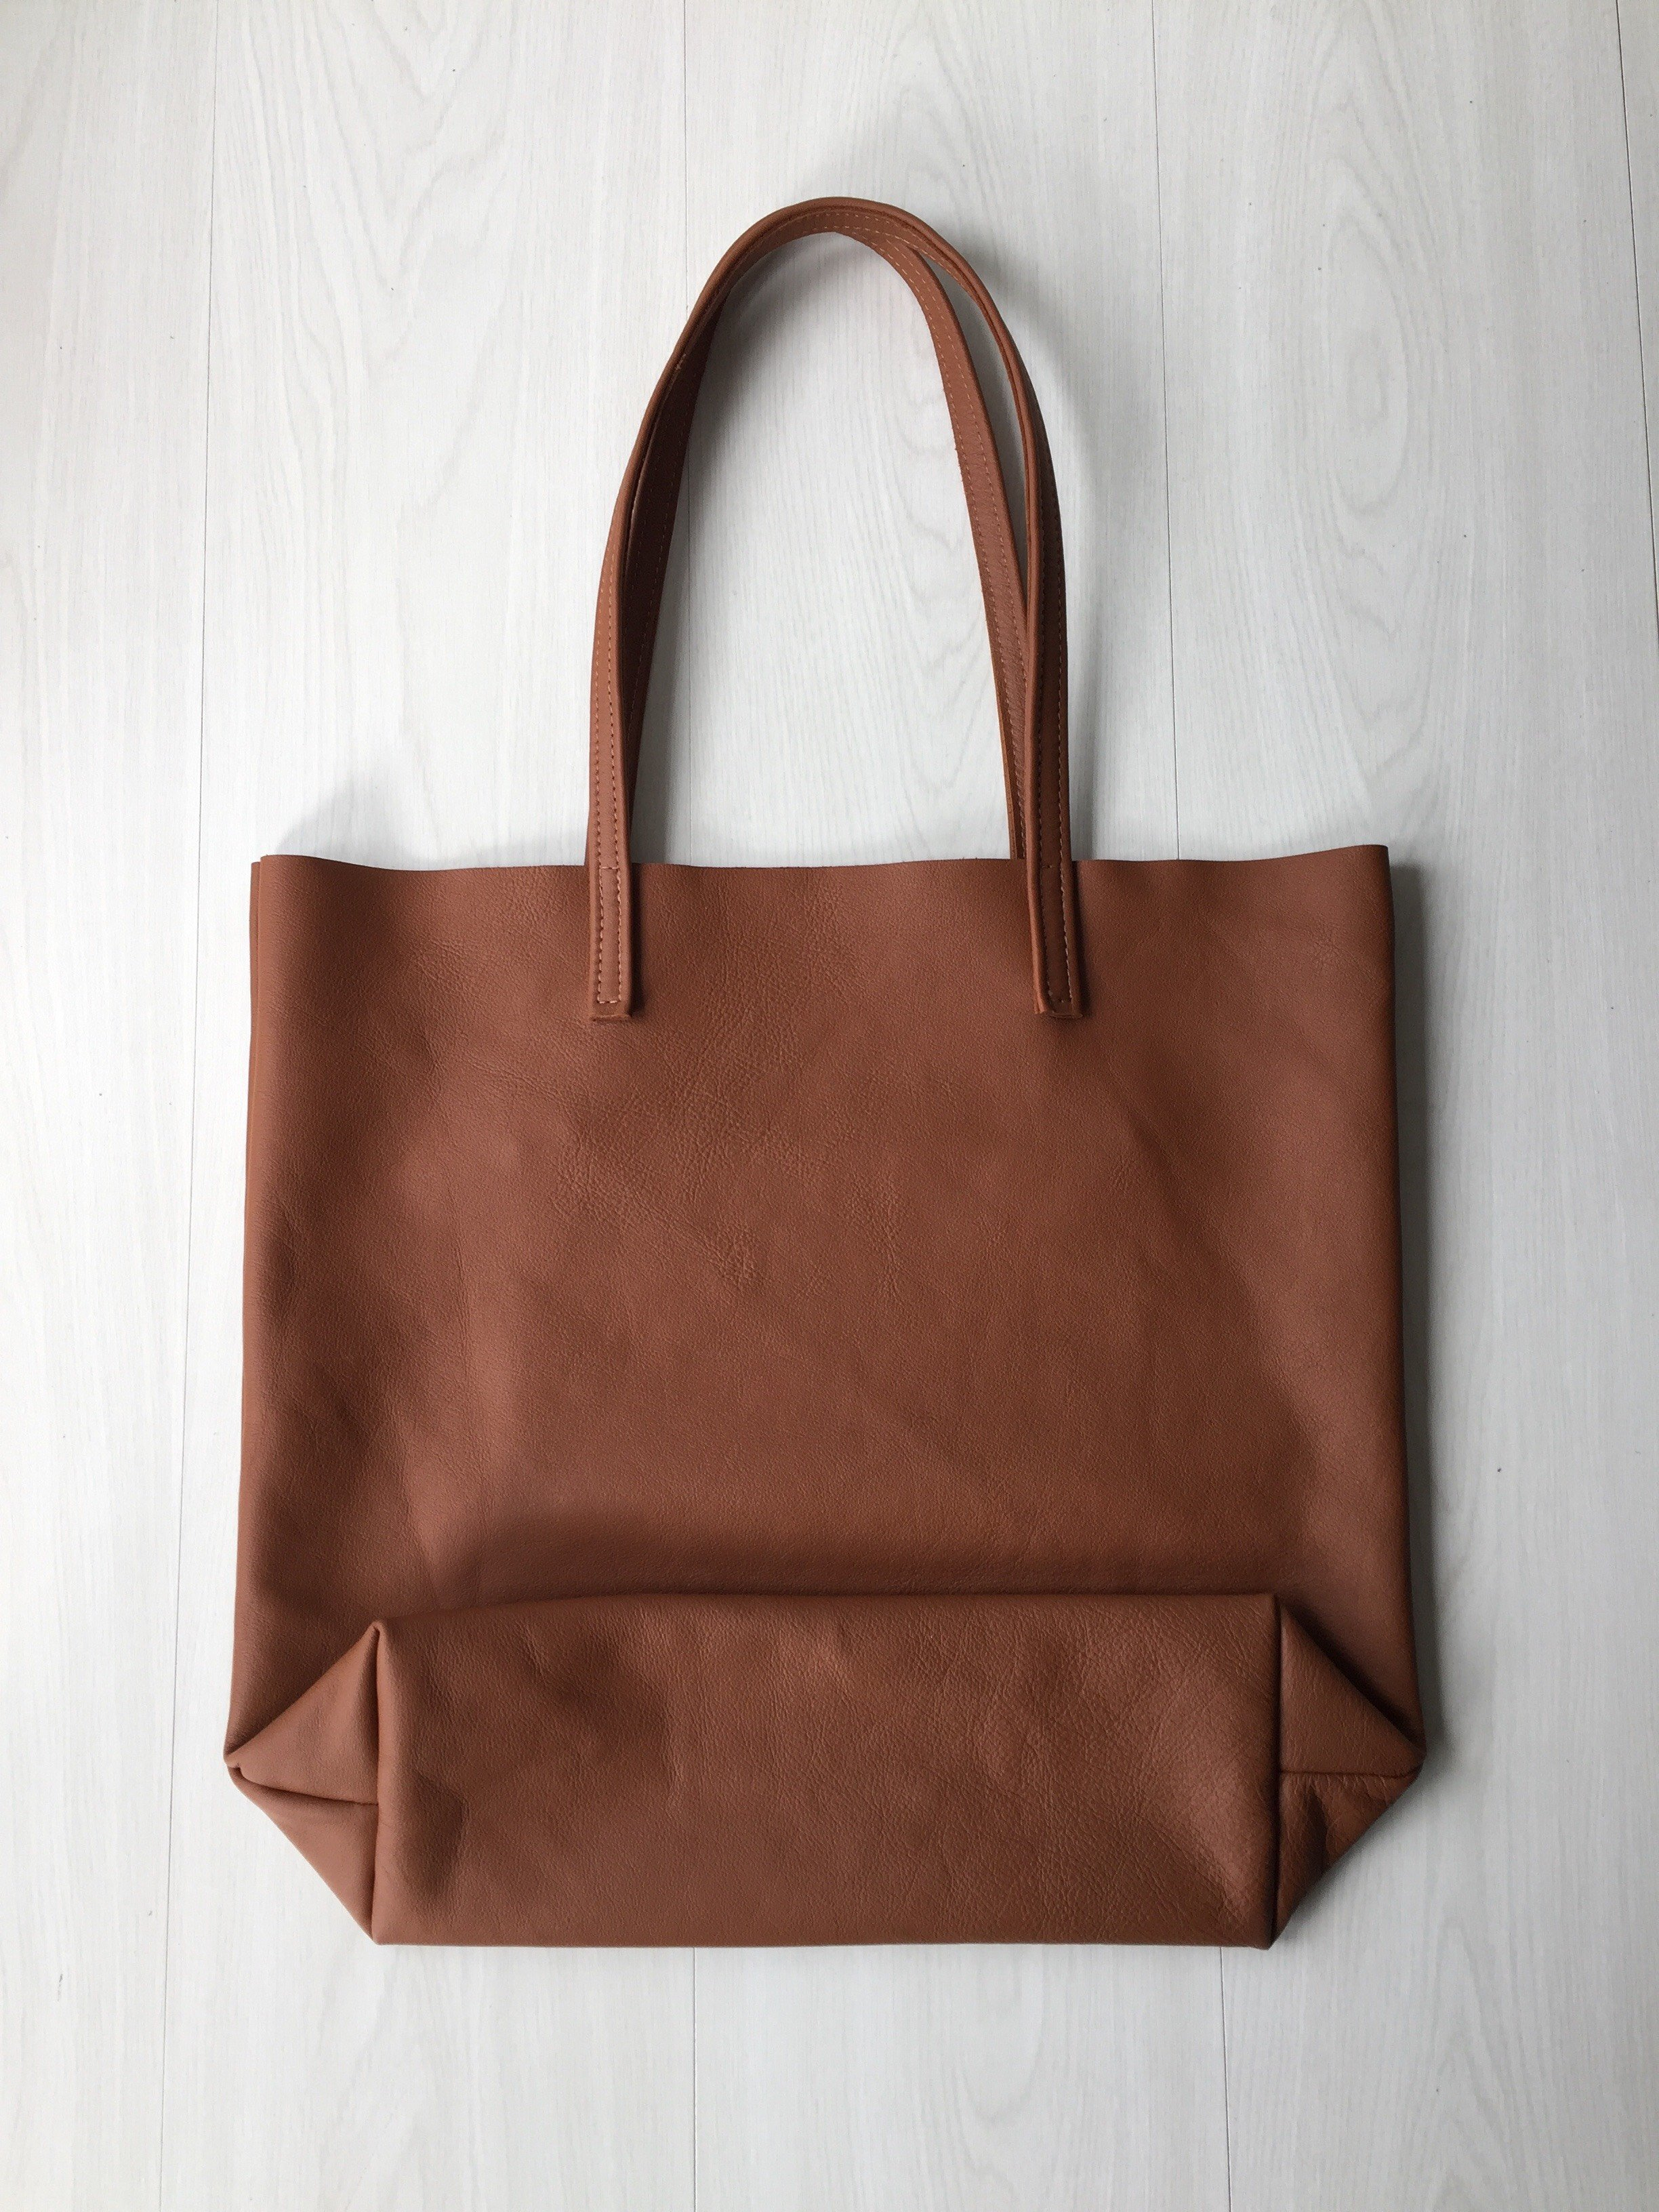 Raw Leather Tote Bag - Cognac Leather